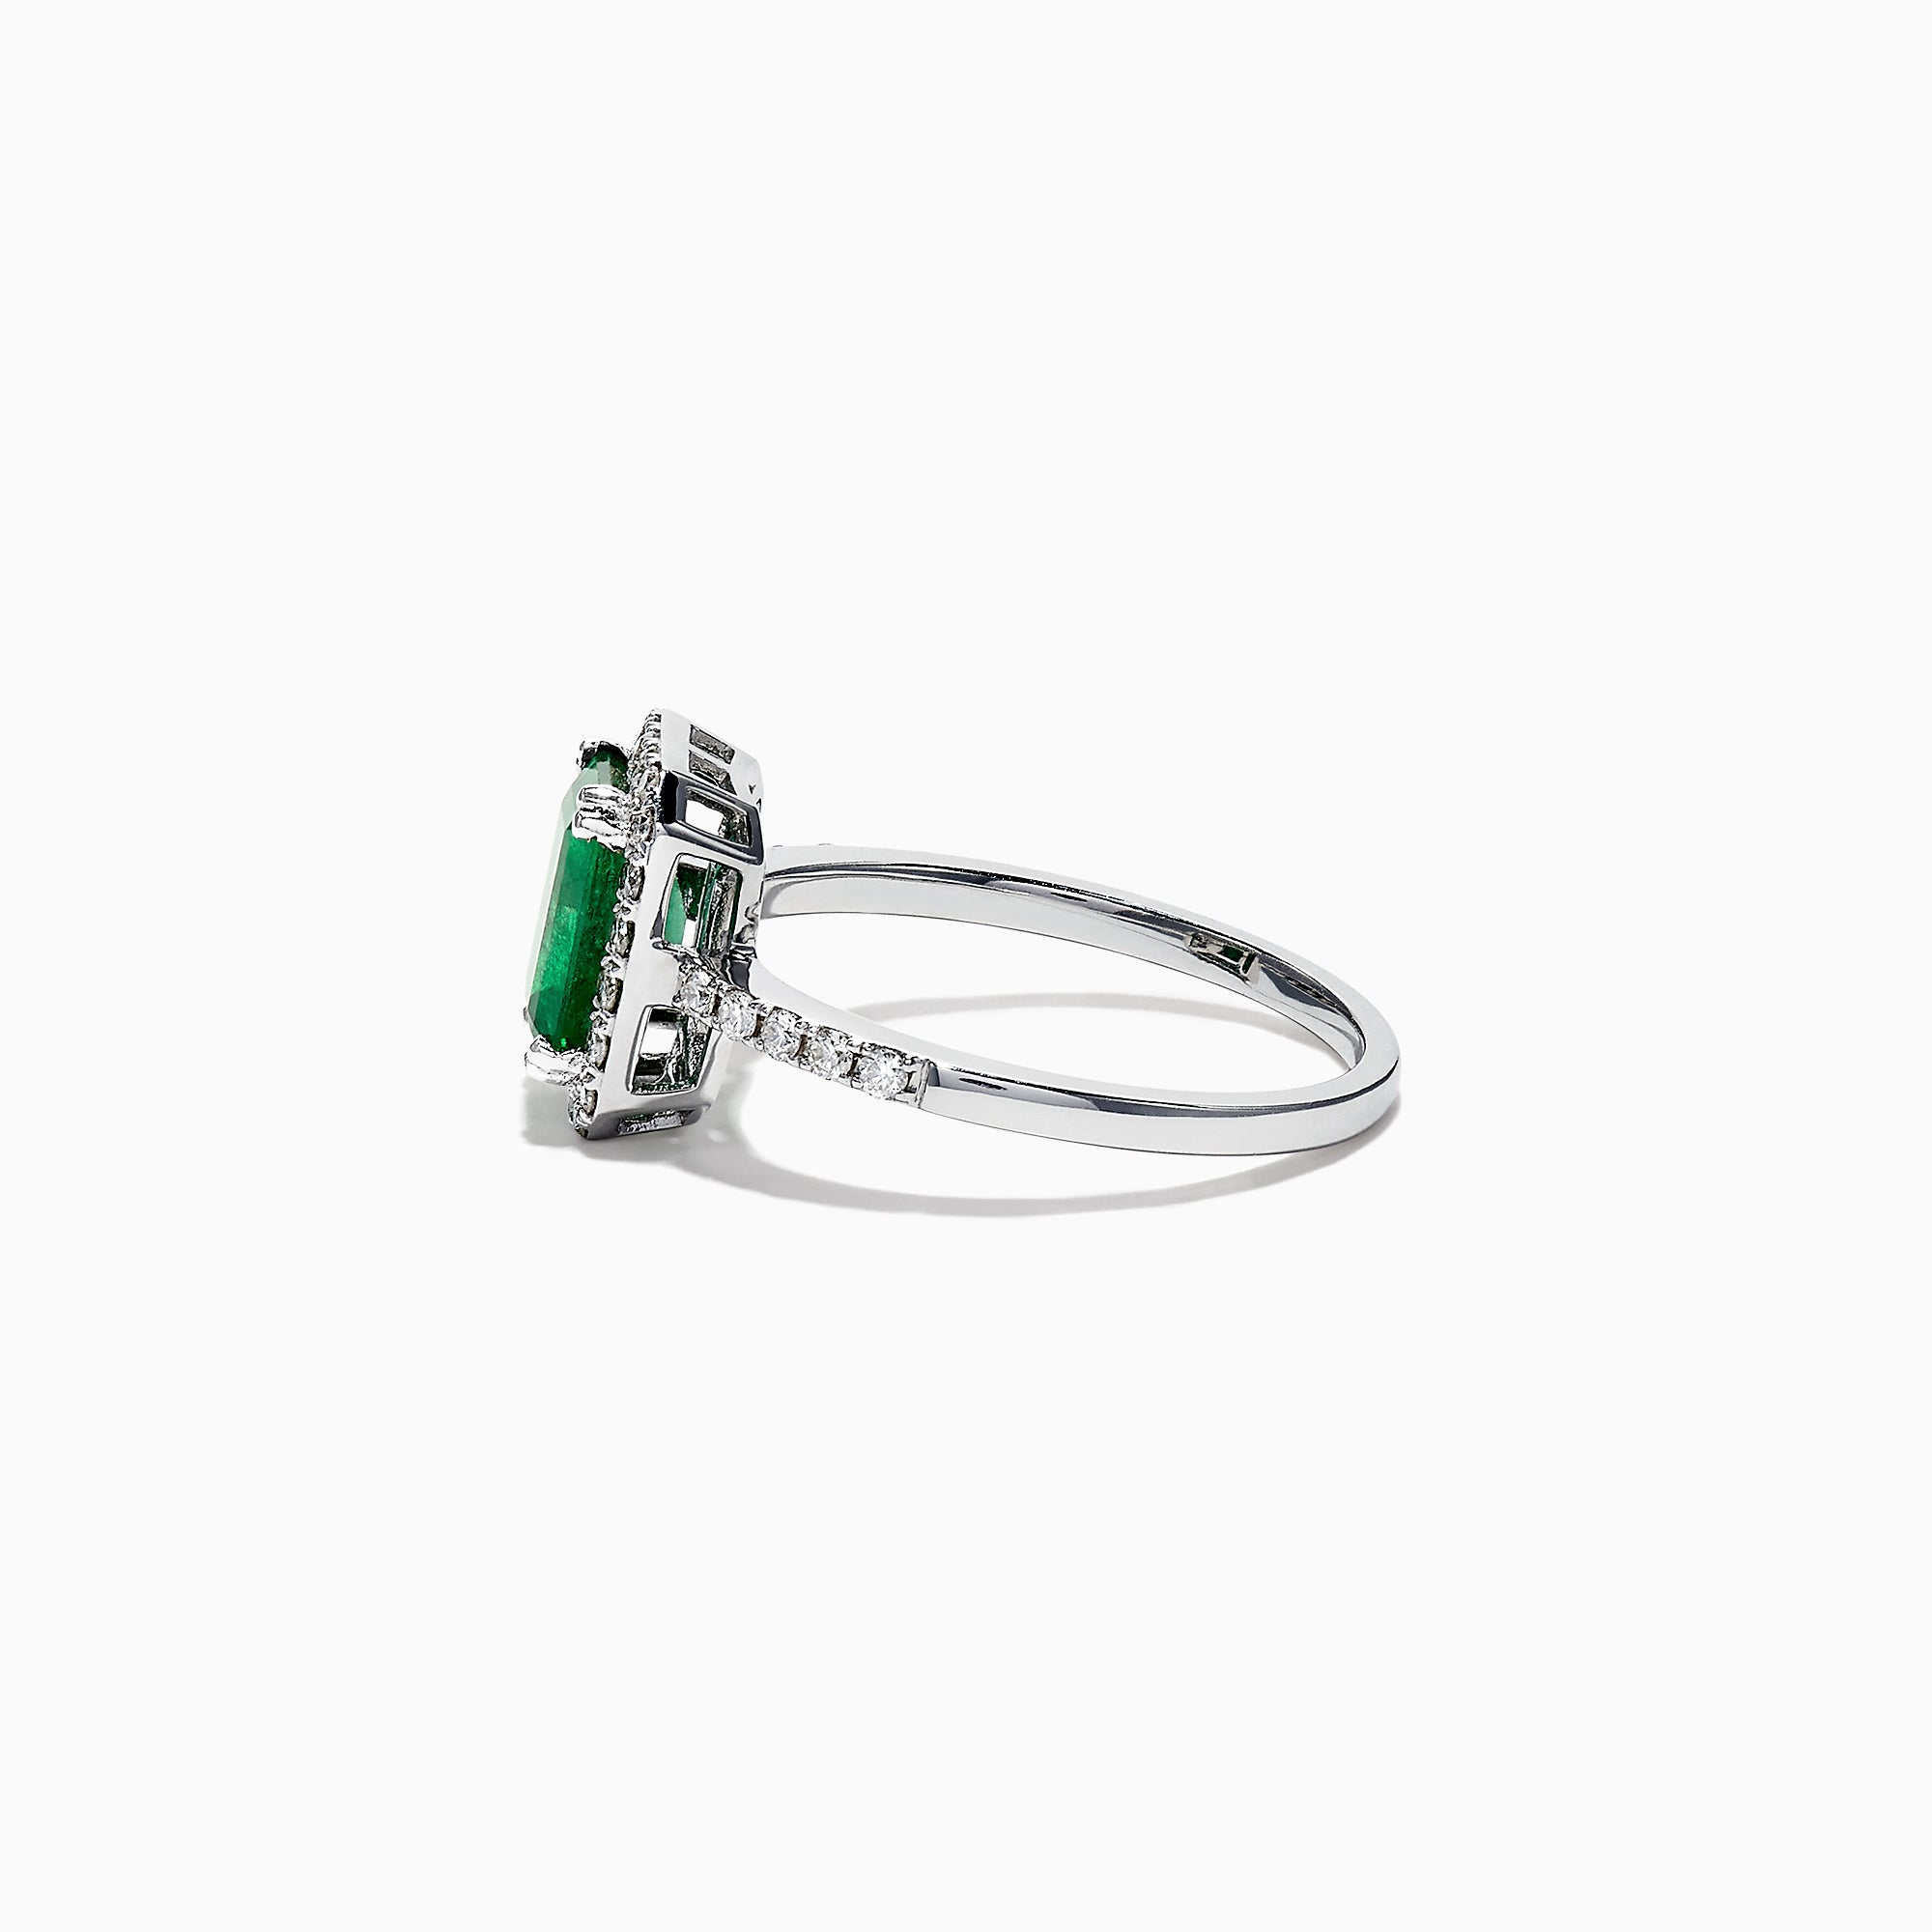 Effy Brasilica 14K White Gold Emerald and Diamond Ring, 1